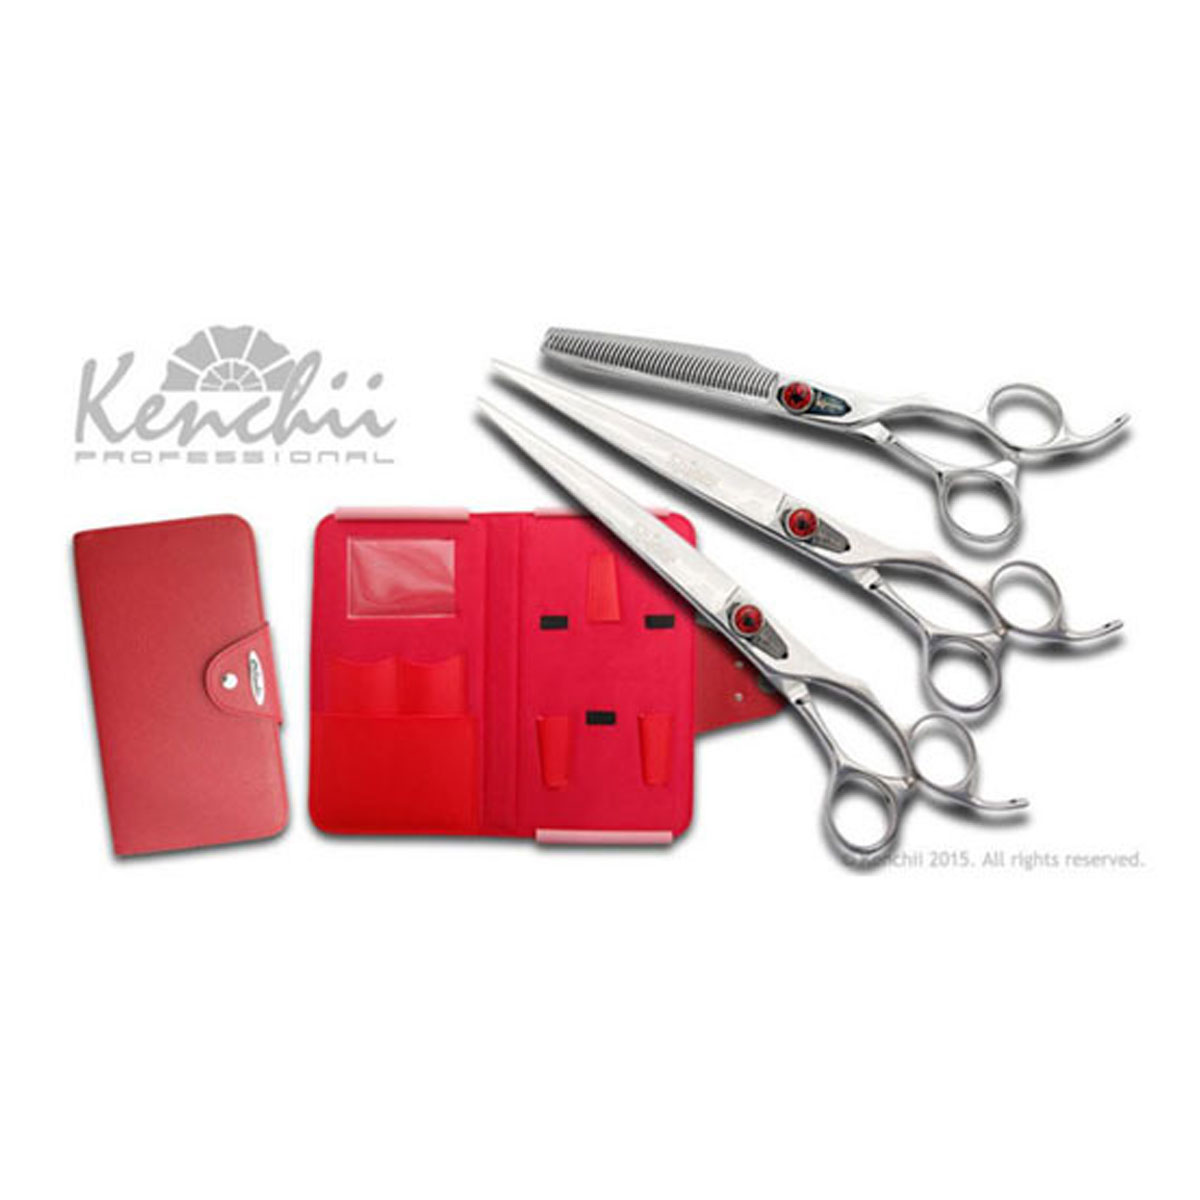 Kenchii Professional Spider Shear Set - Includes Spider 8 inch Straight Shear, 8 inch Curved Shear and 44 Tooth Thinner